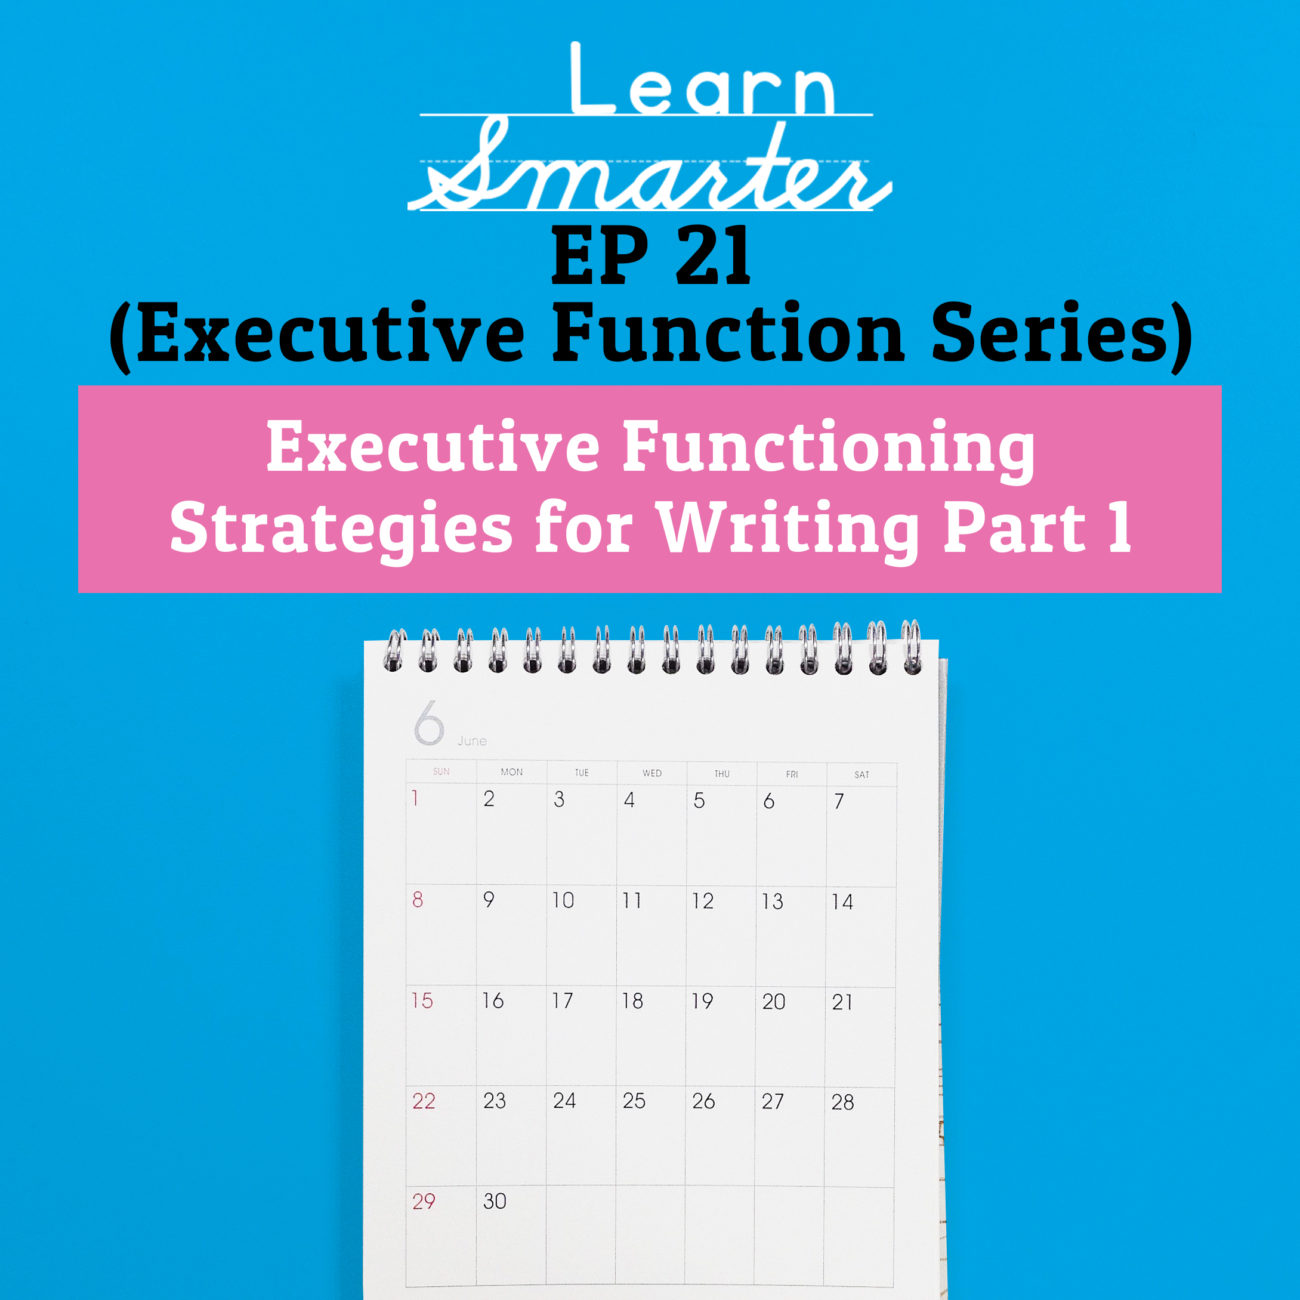 21: Executive Functioning Strategies for Writing Part 1